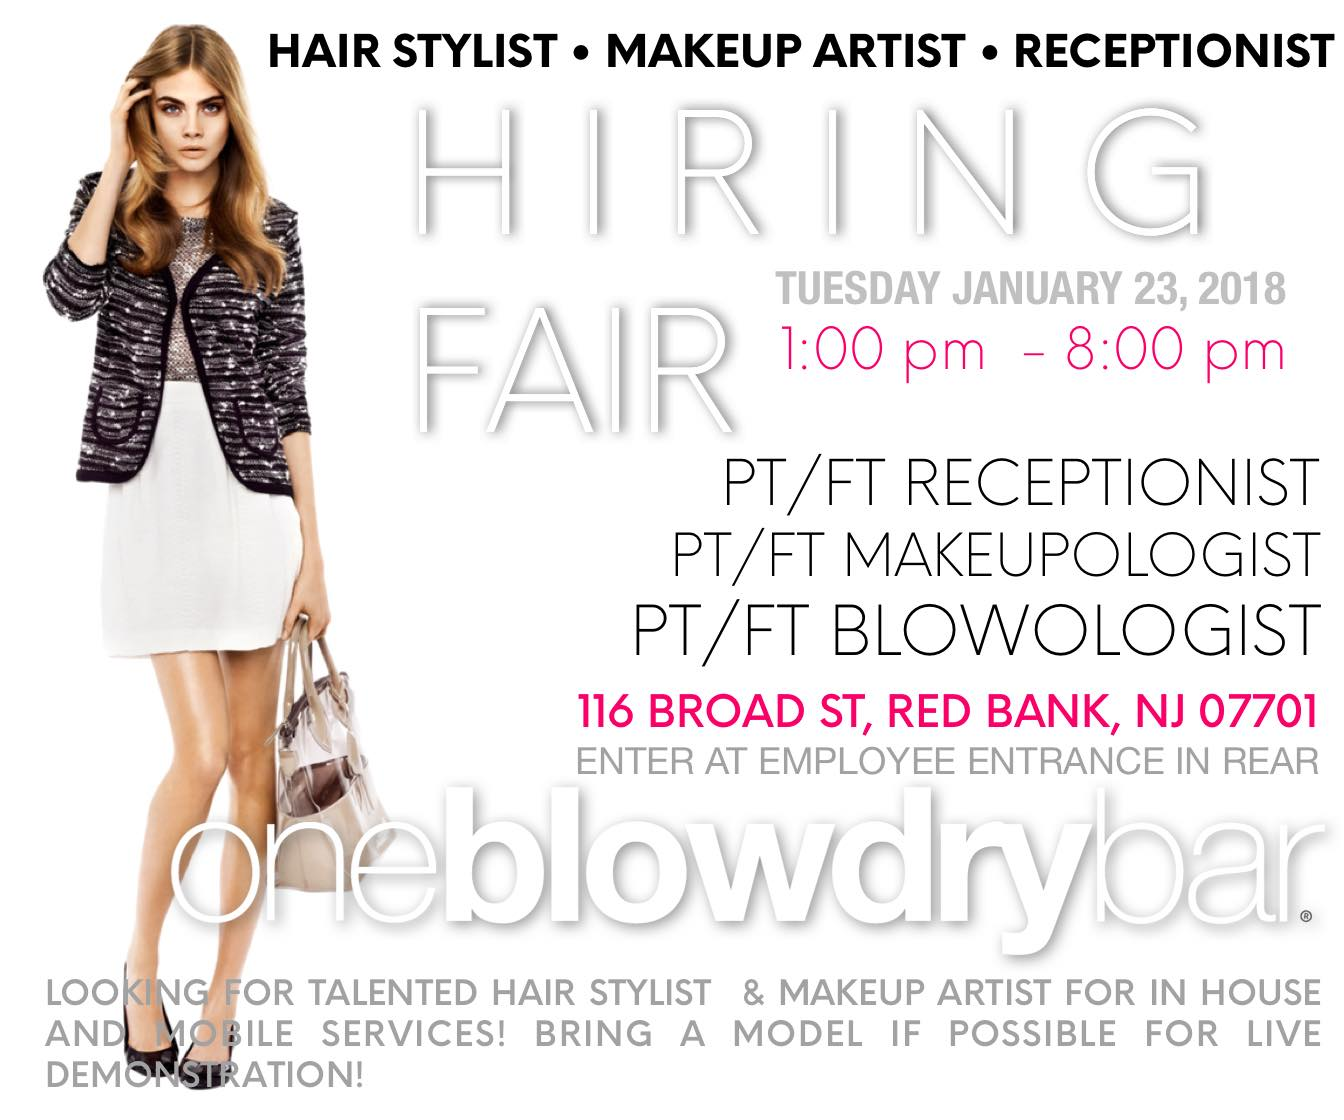 Red Bank's blow dry bar are hiring new hair stylist for their oneblowdrybar